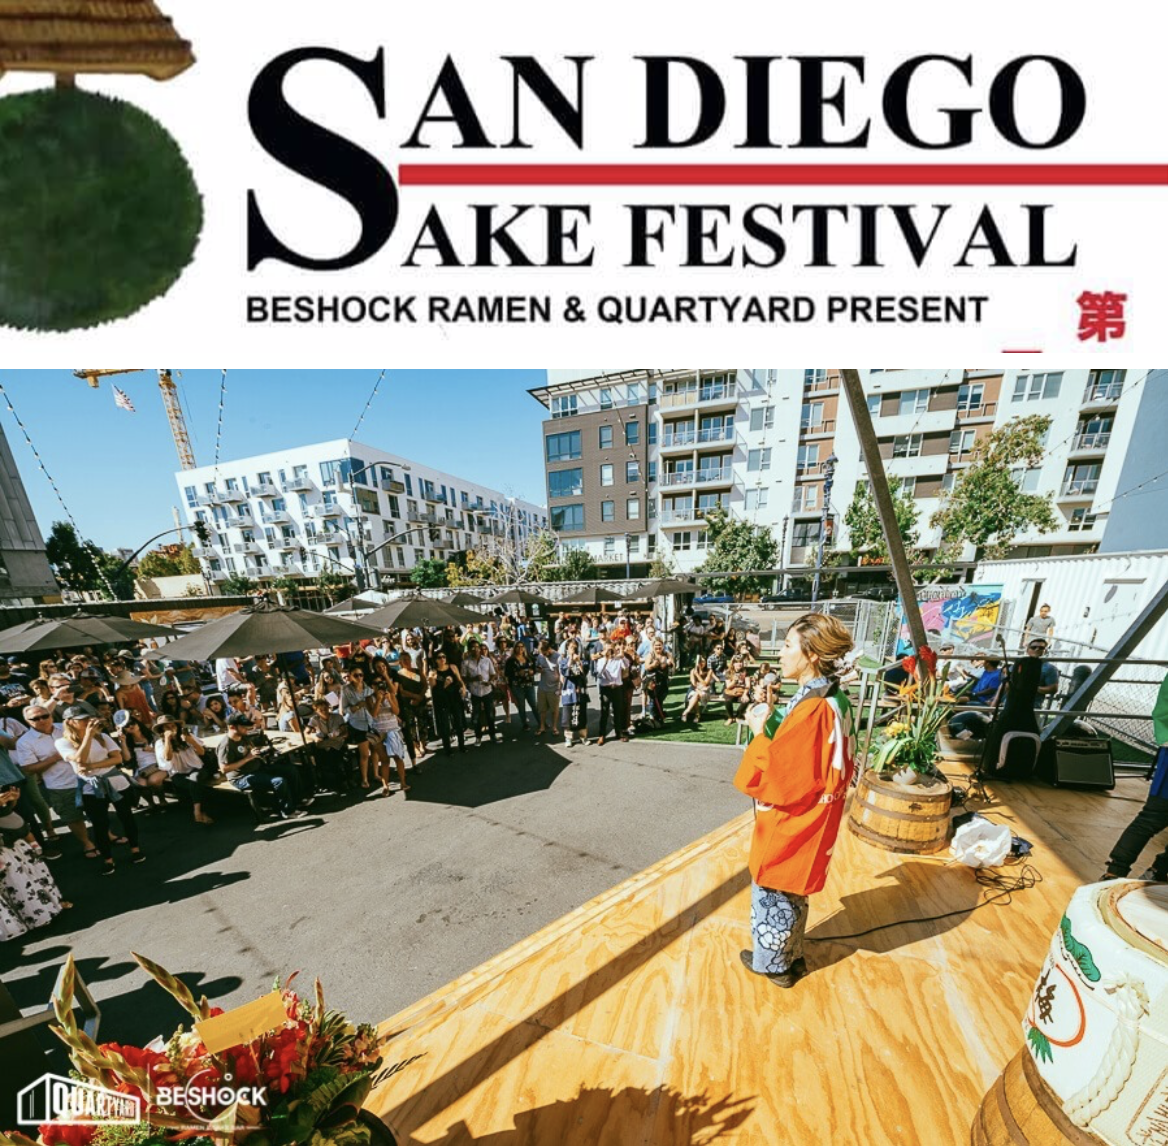 Enter to win 2 tickets to the San Diego Sake Festival - September 29!